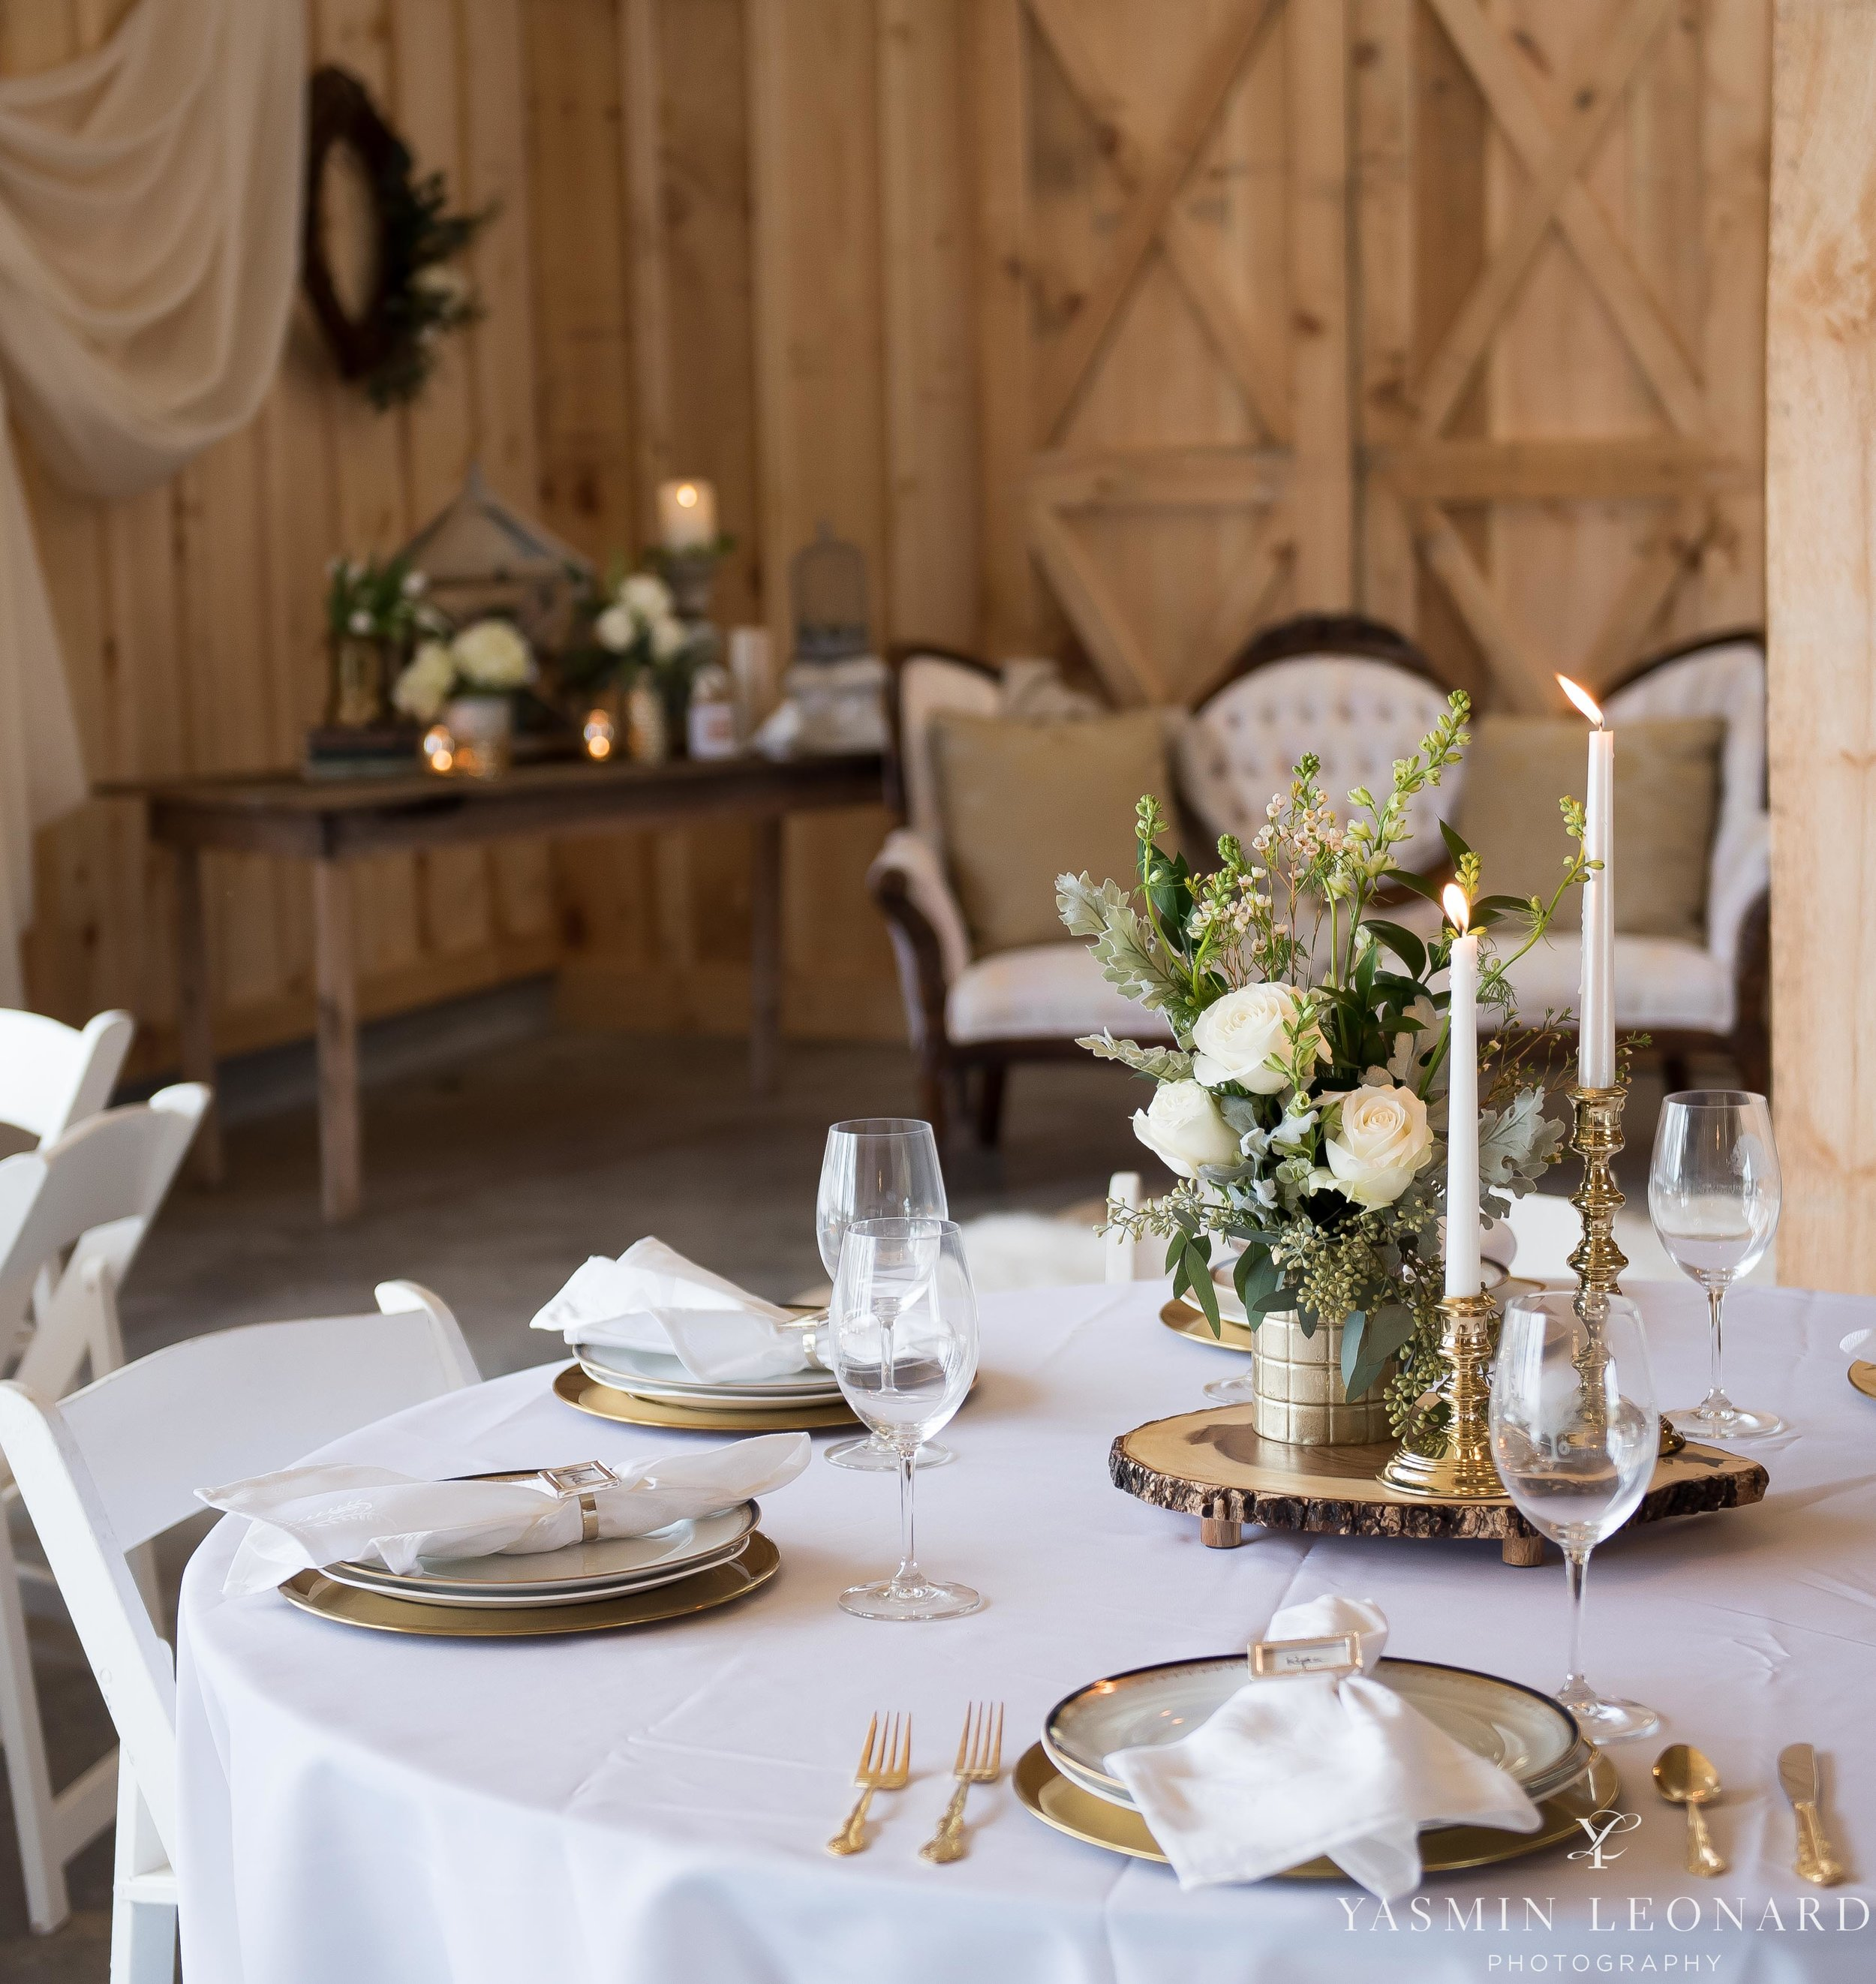 Old Homeplace Vineyard - Grits and Glitter - Dashing Dames Bridal Boutique - Just Priceless - Yasmin Leonard Photography - High Point Weddings - NC Weddings - NC Wedding Venues - High Point Jewelers - NC Wines - NC Vineyards - Cupcake Cuties-13.jpg